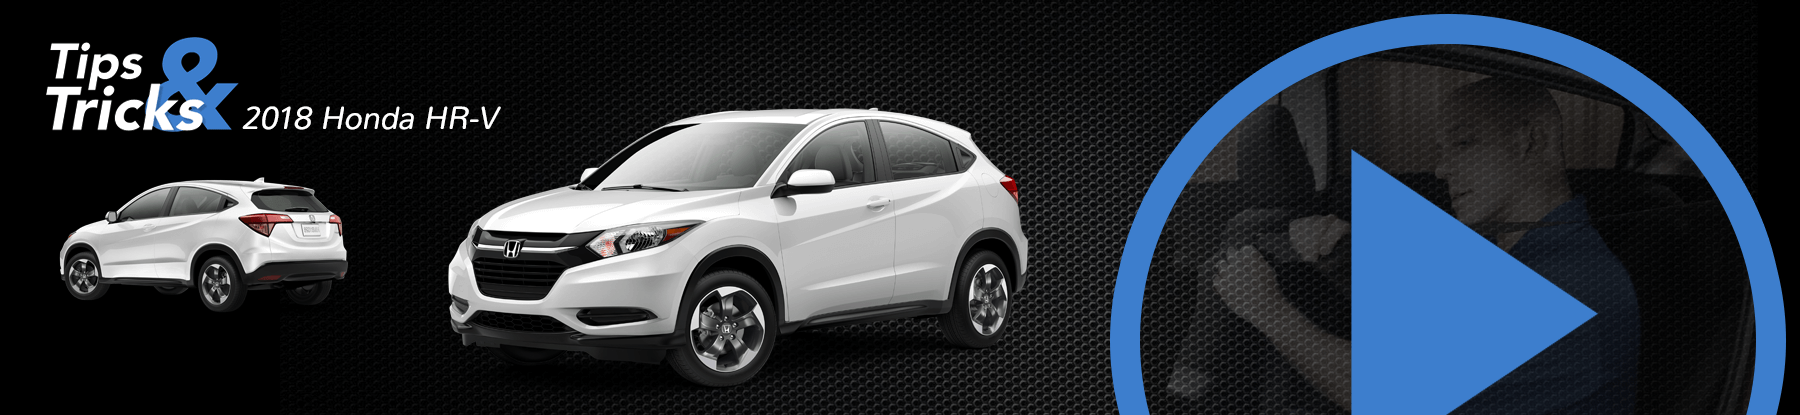 2018 Honda HR-V Tips and Tricks